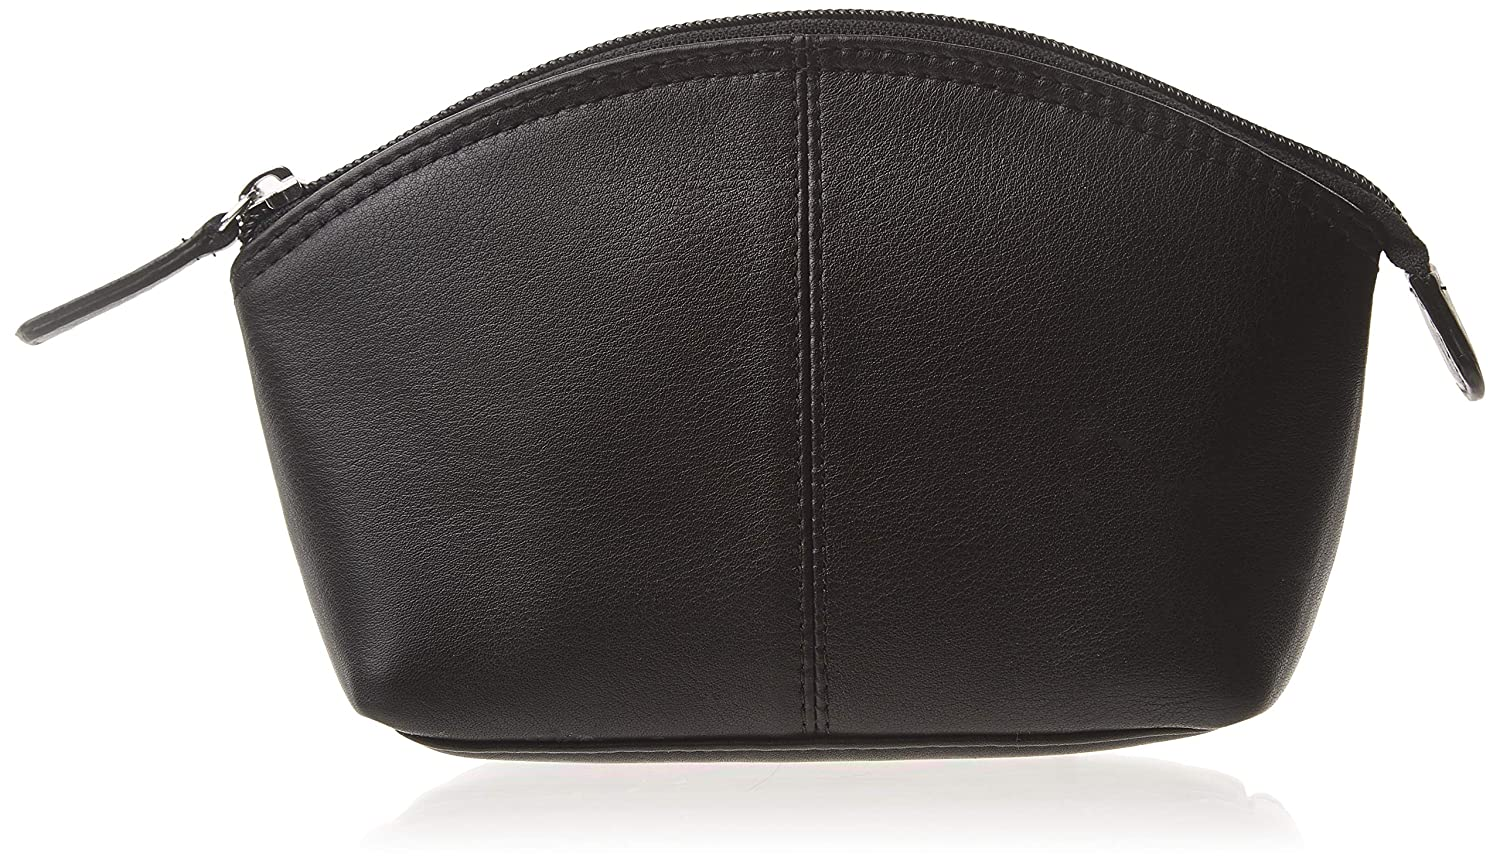 ili New York 6480 Leather Cosmetic Makeup Case